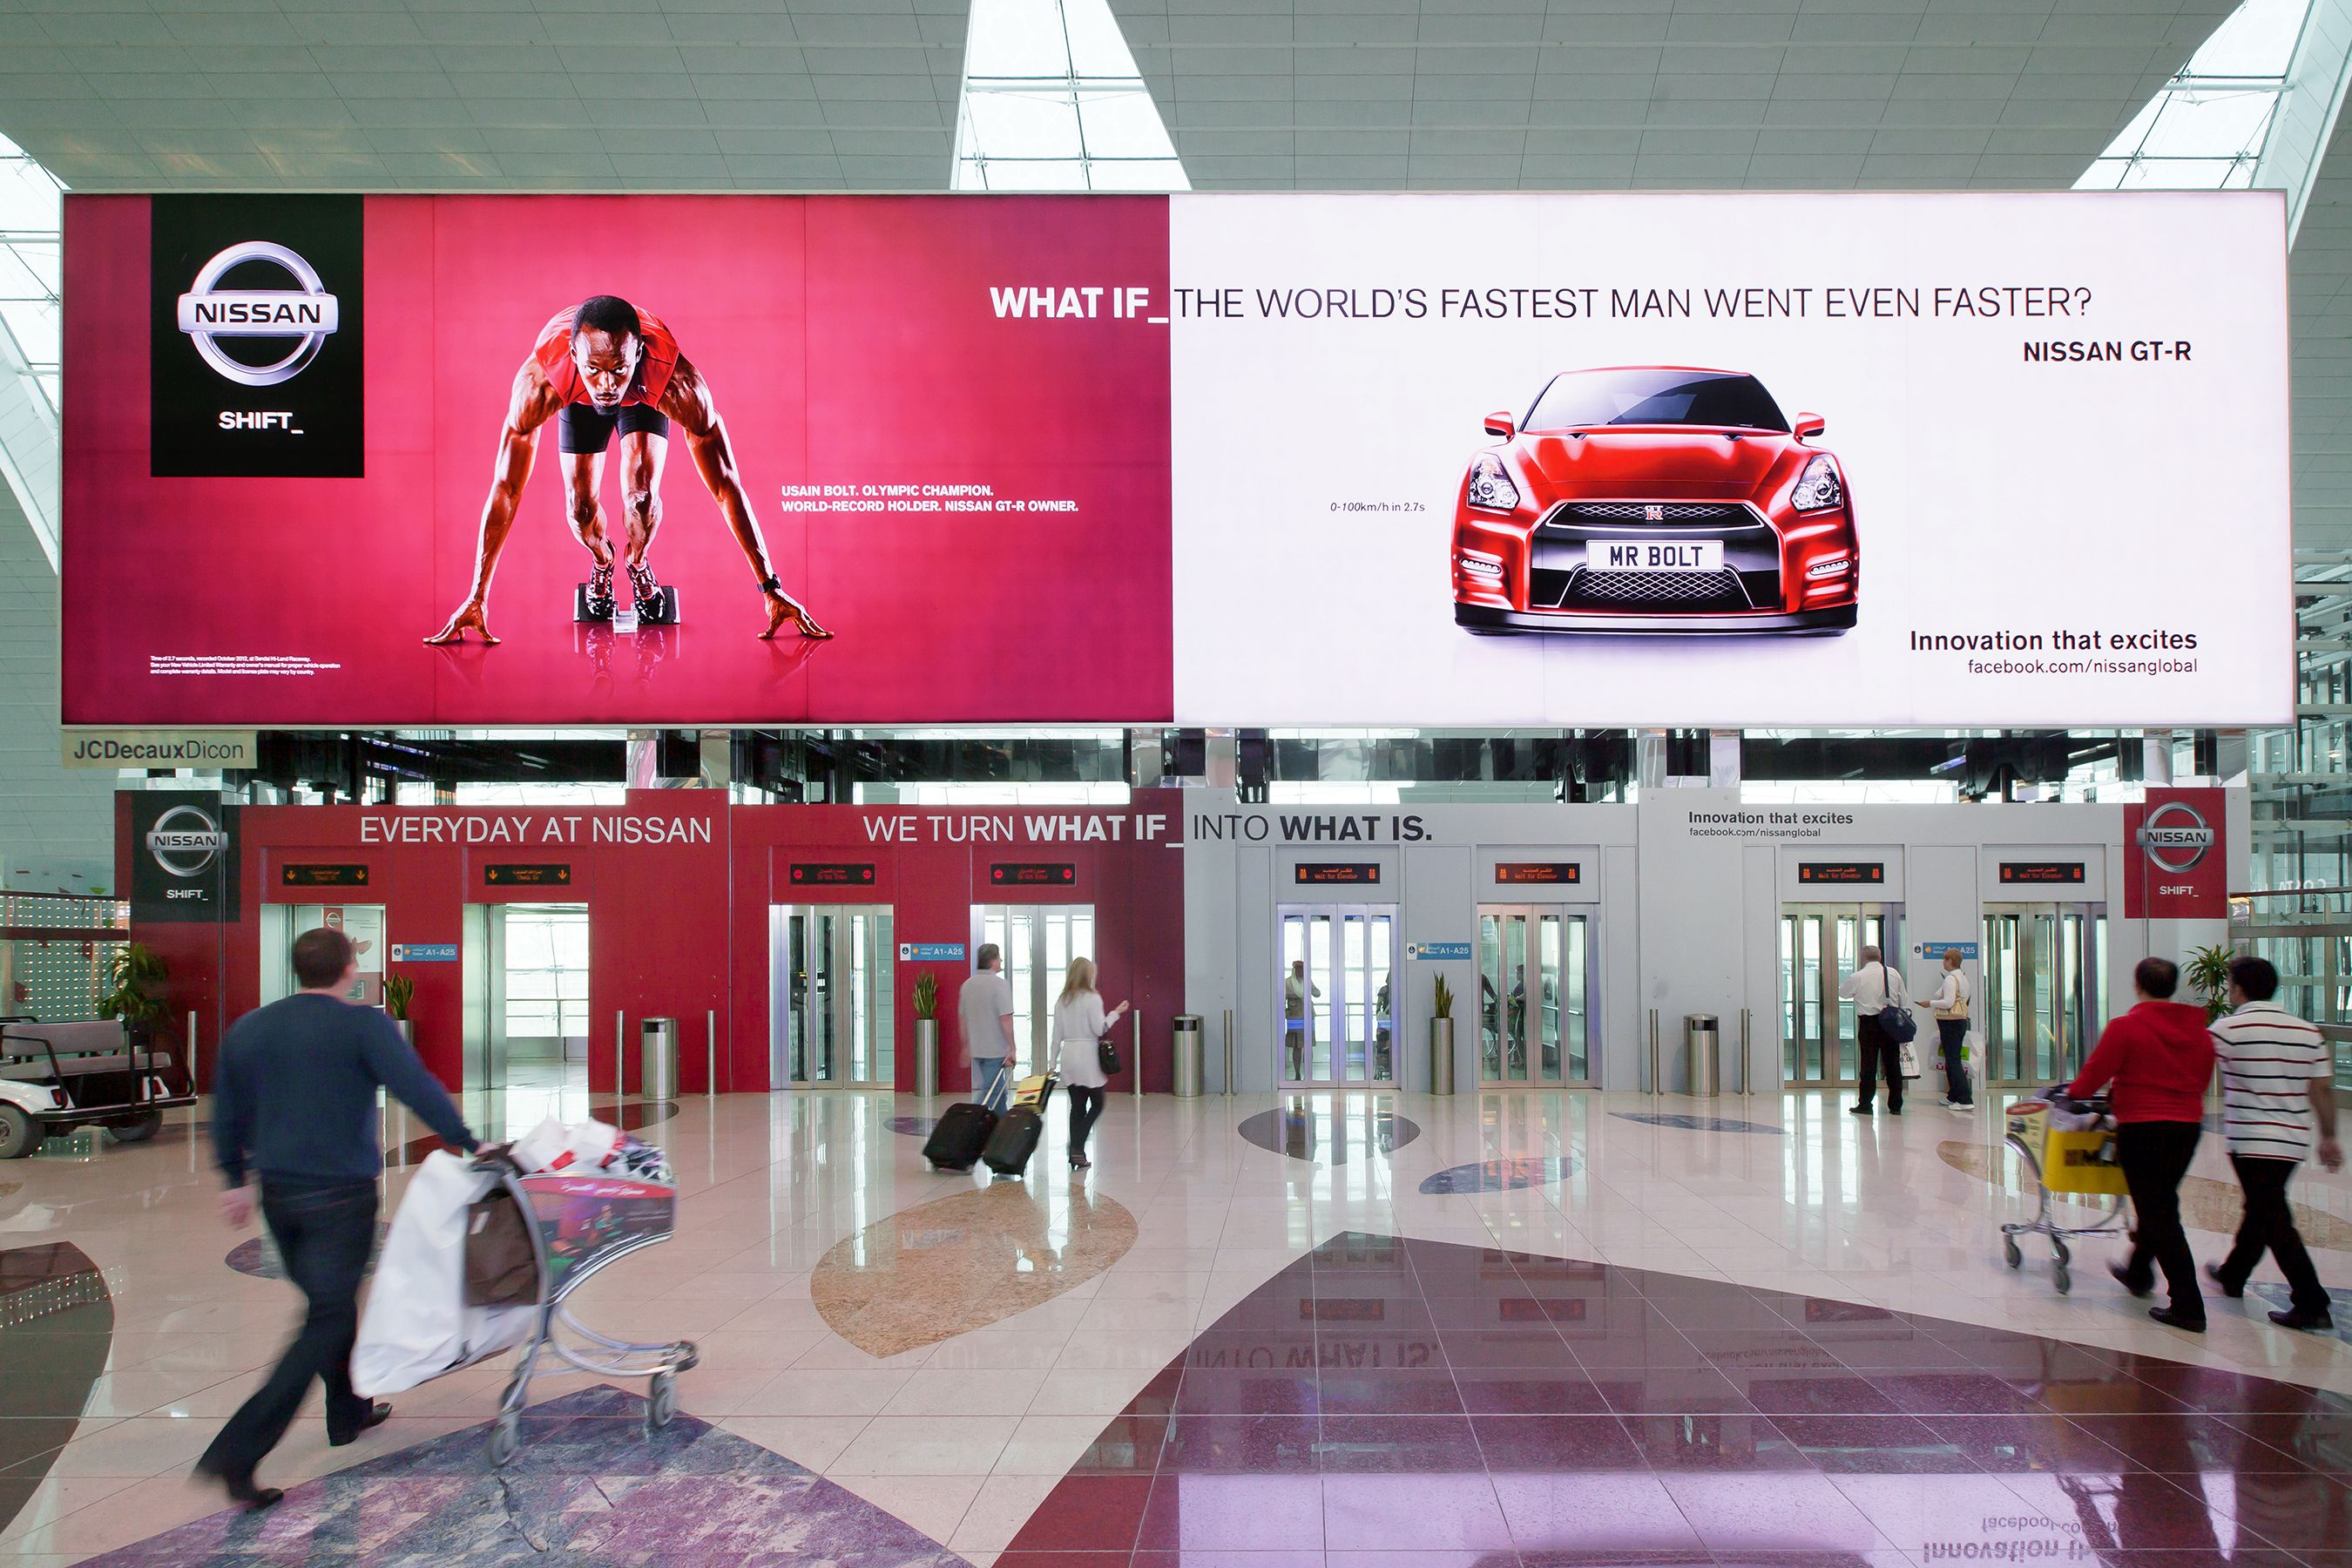 Jcdecaux Nissan Dubai Airports And Mindshare Enter The